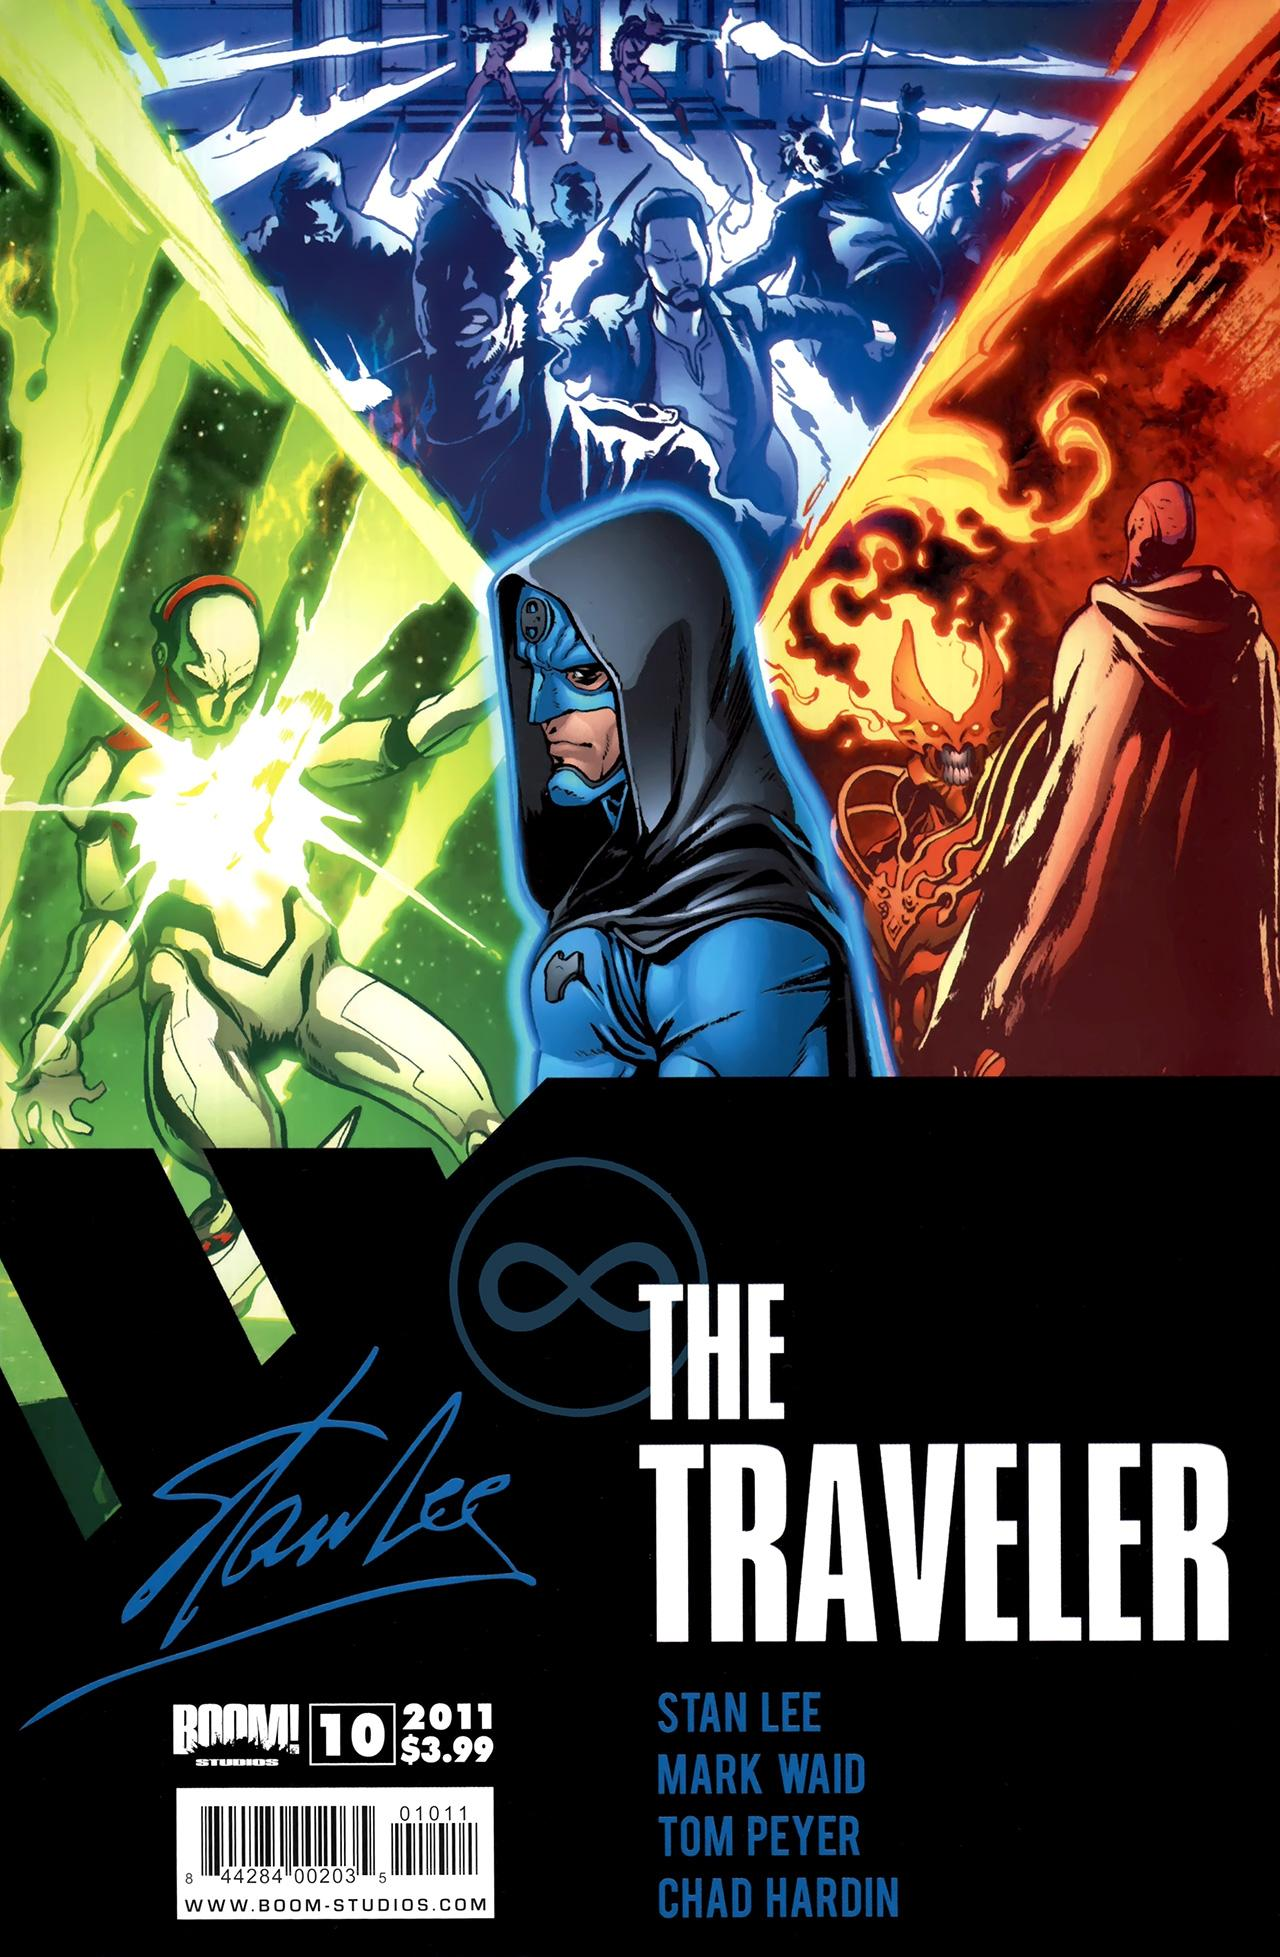 Stan Lee's The Traveler #10 (2011) free download